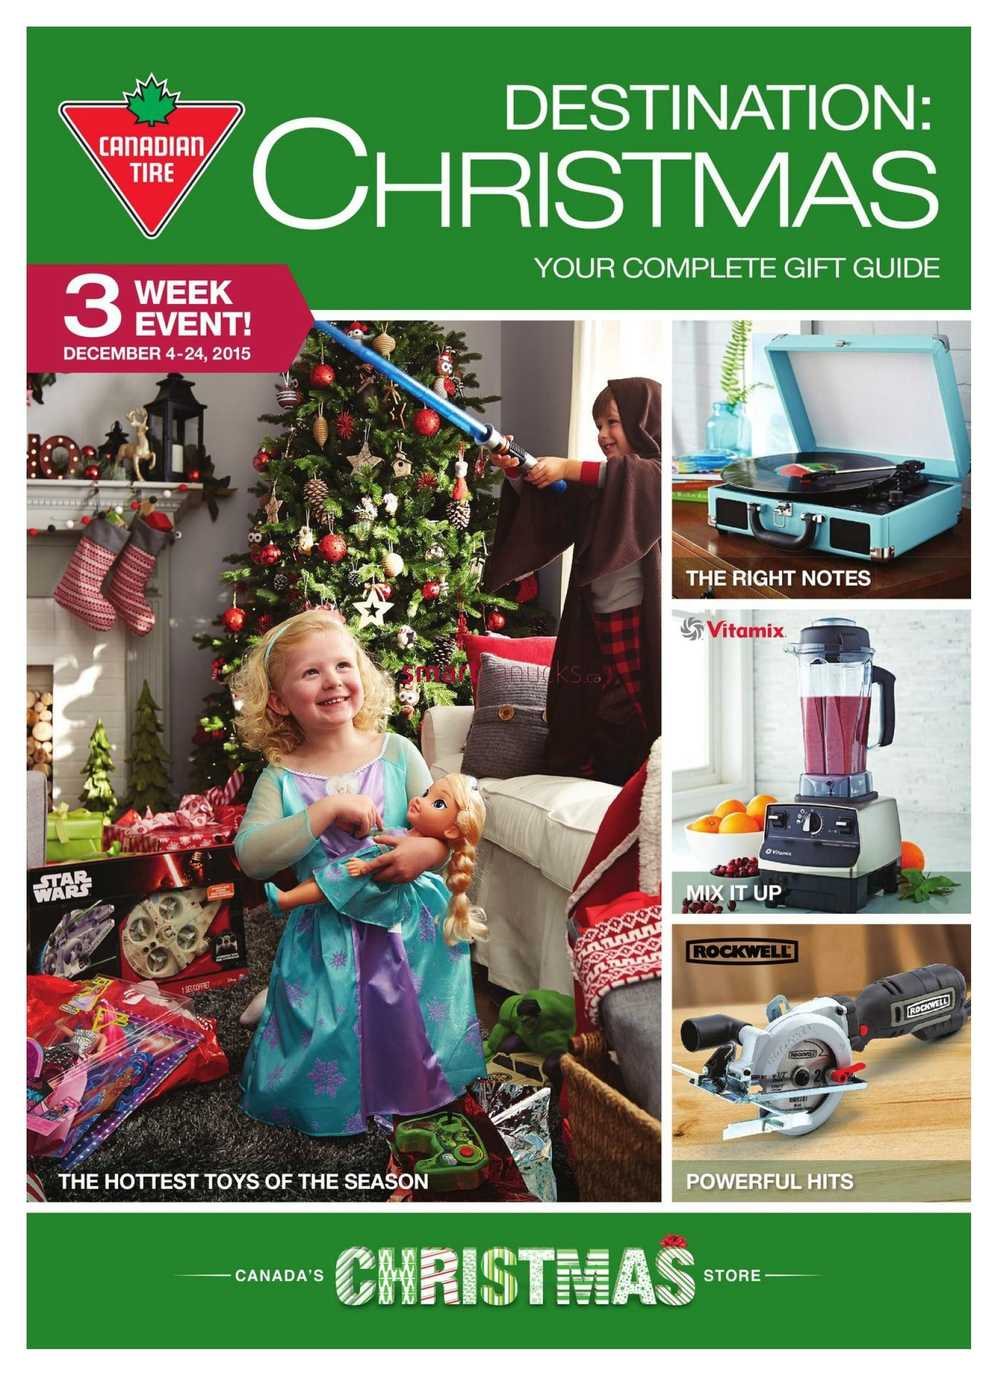 canadian tire holiday hours canadian tire christmas gift guide december 4 to 24 10512